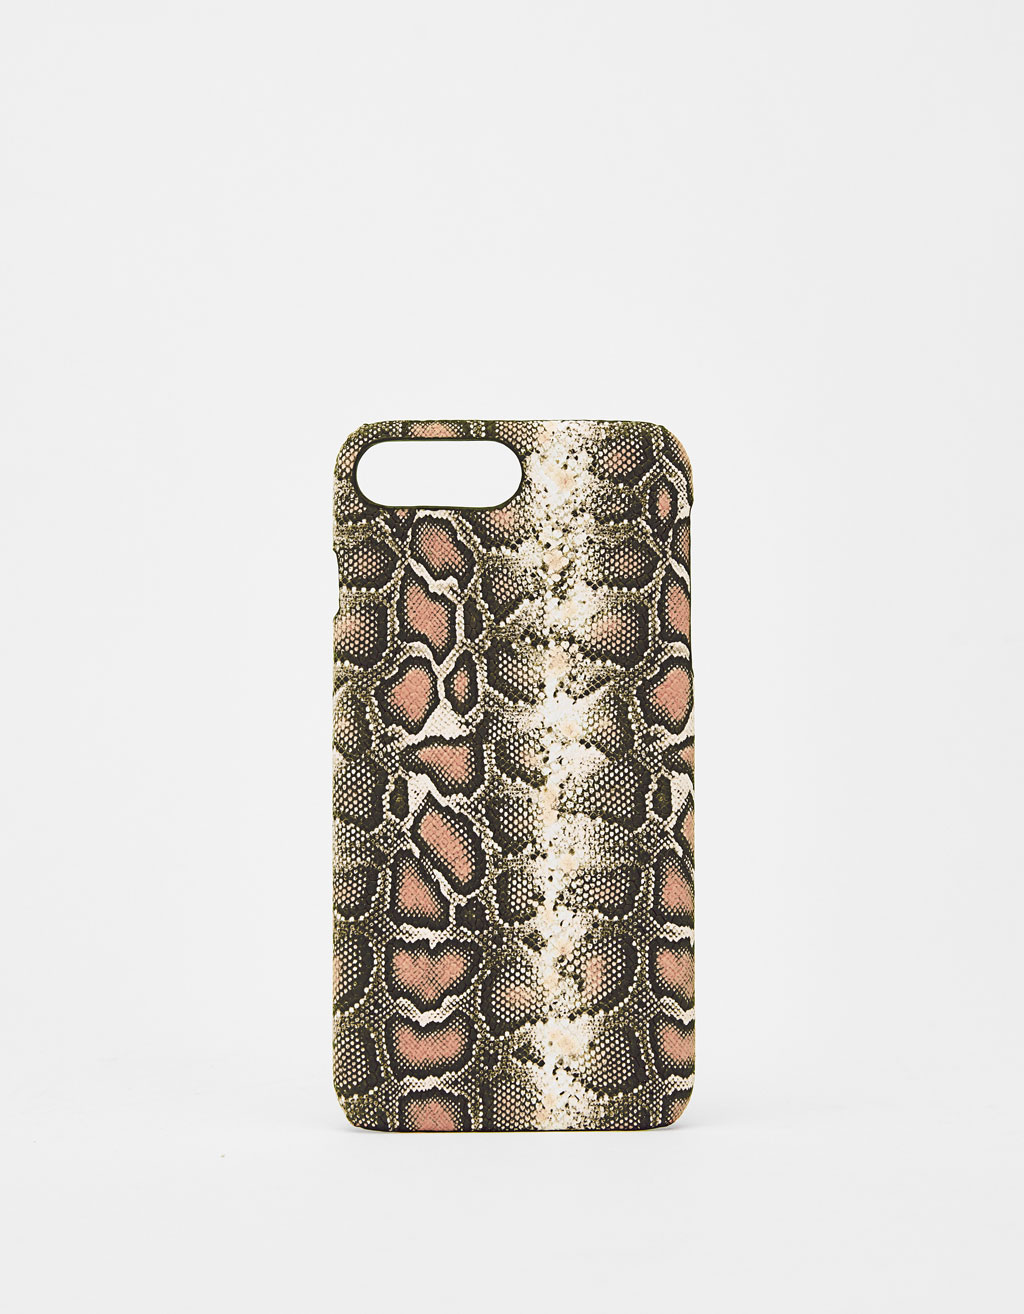 Snakeskin iPhone 6 Plus/7 Plus/8 Plus case